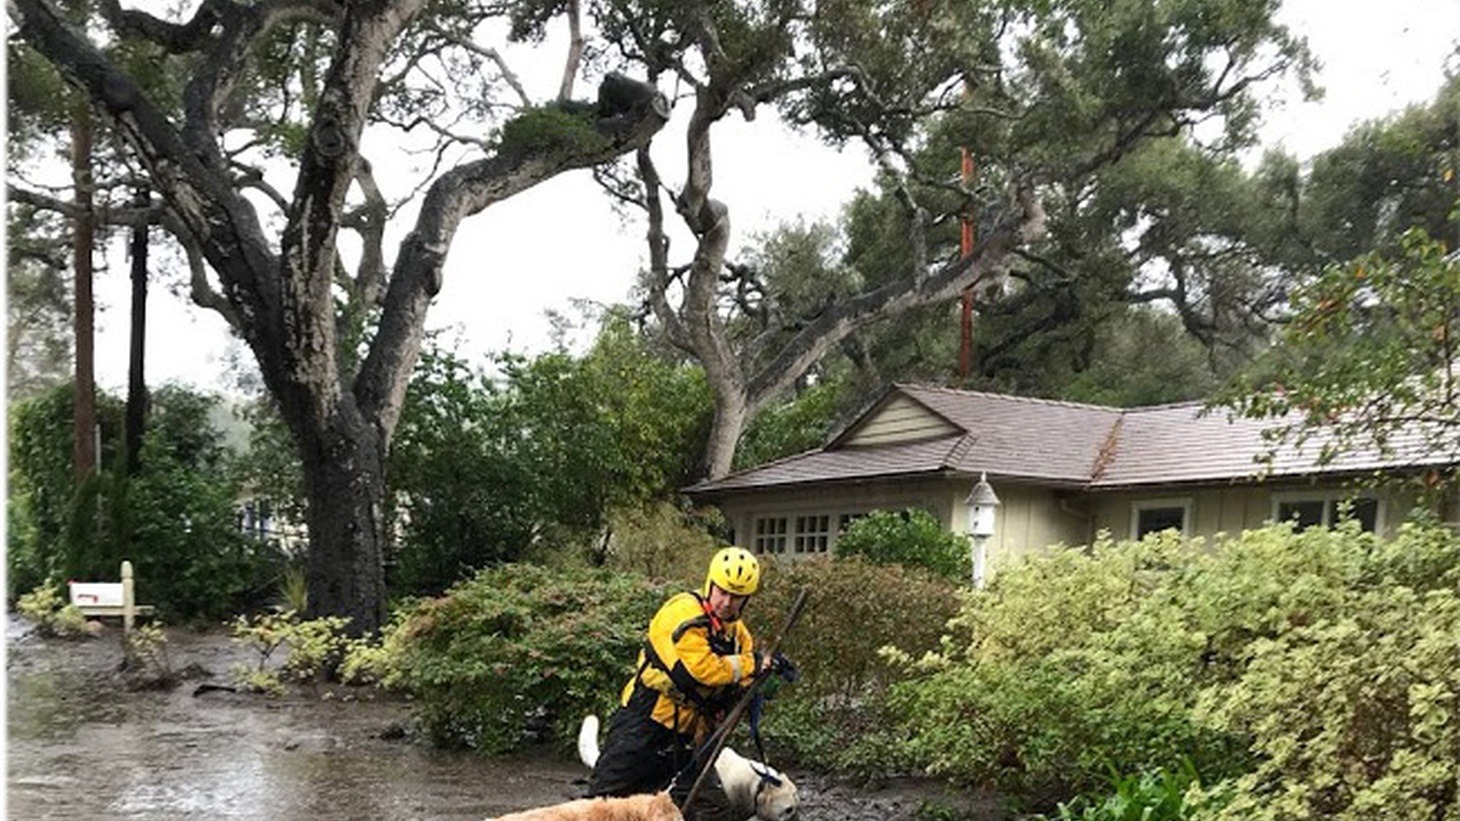 A tragic mudslide in the coastal Santa Barbara community of Montecito has left over a dozen people dead and missing. The destruction is only beginning to be measured.